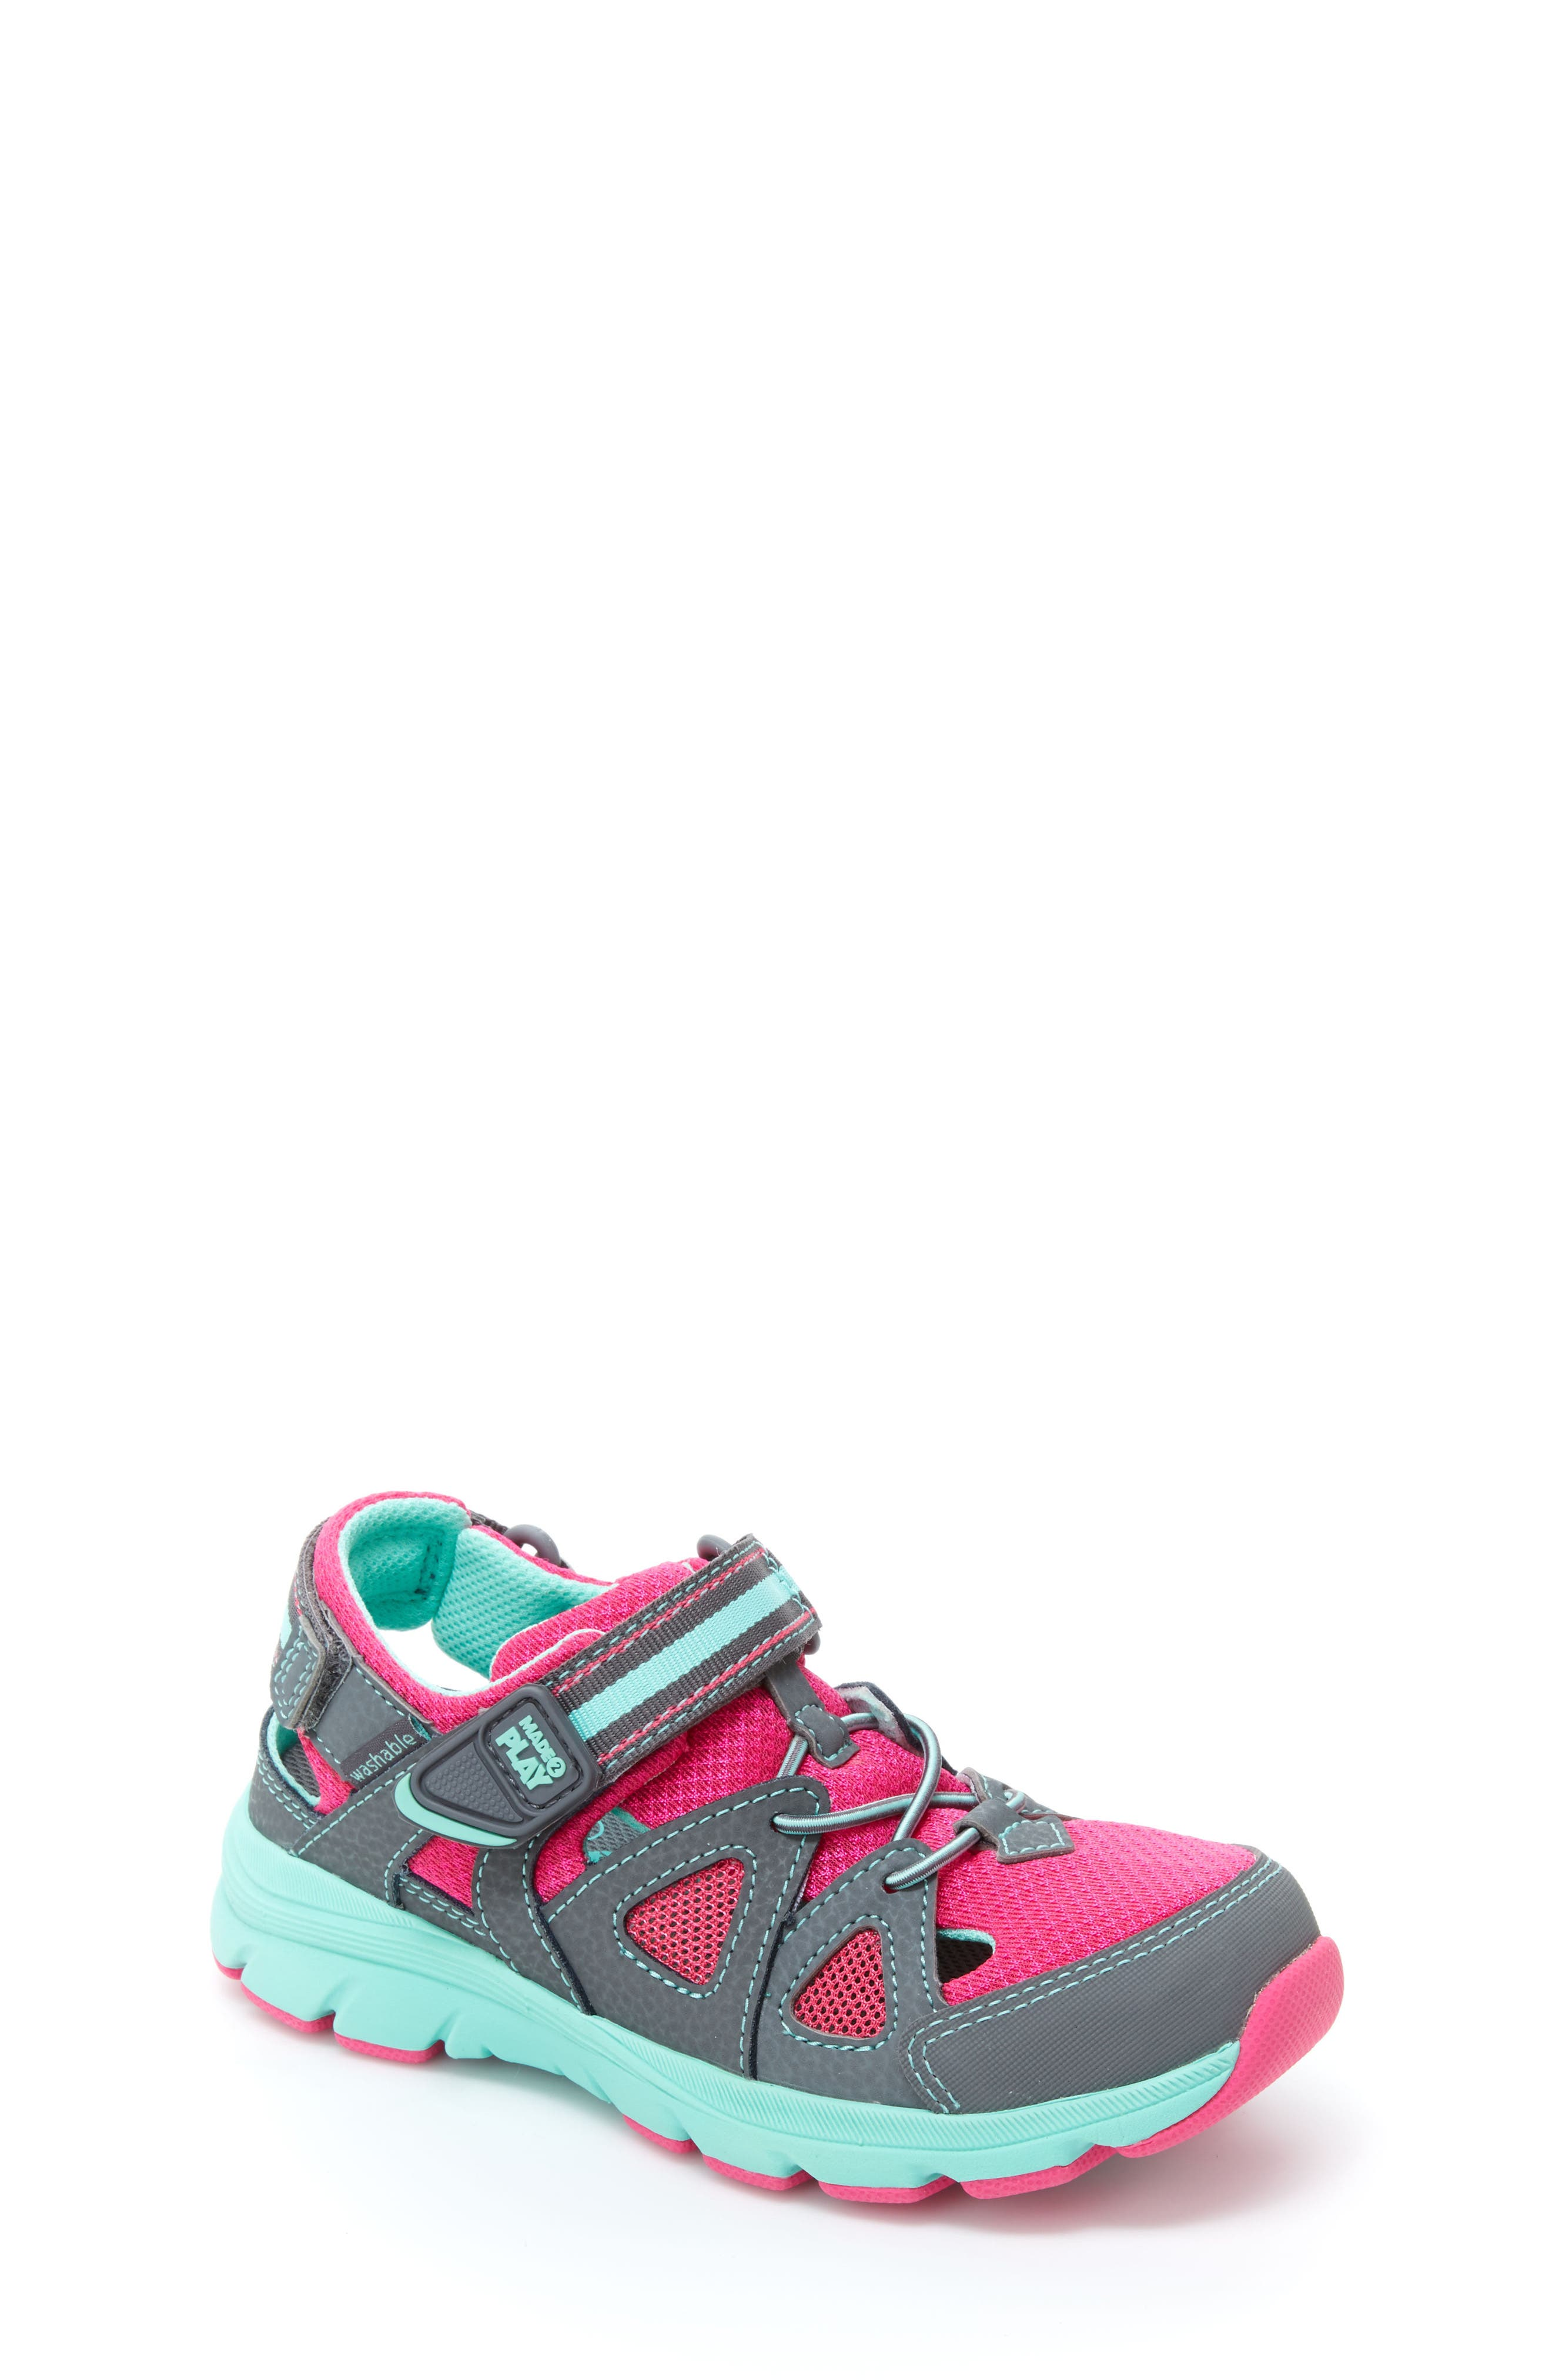 Made2Play<sup>®</sup> Ryder Washable Sneaker,                         Main,                         color, 020